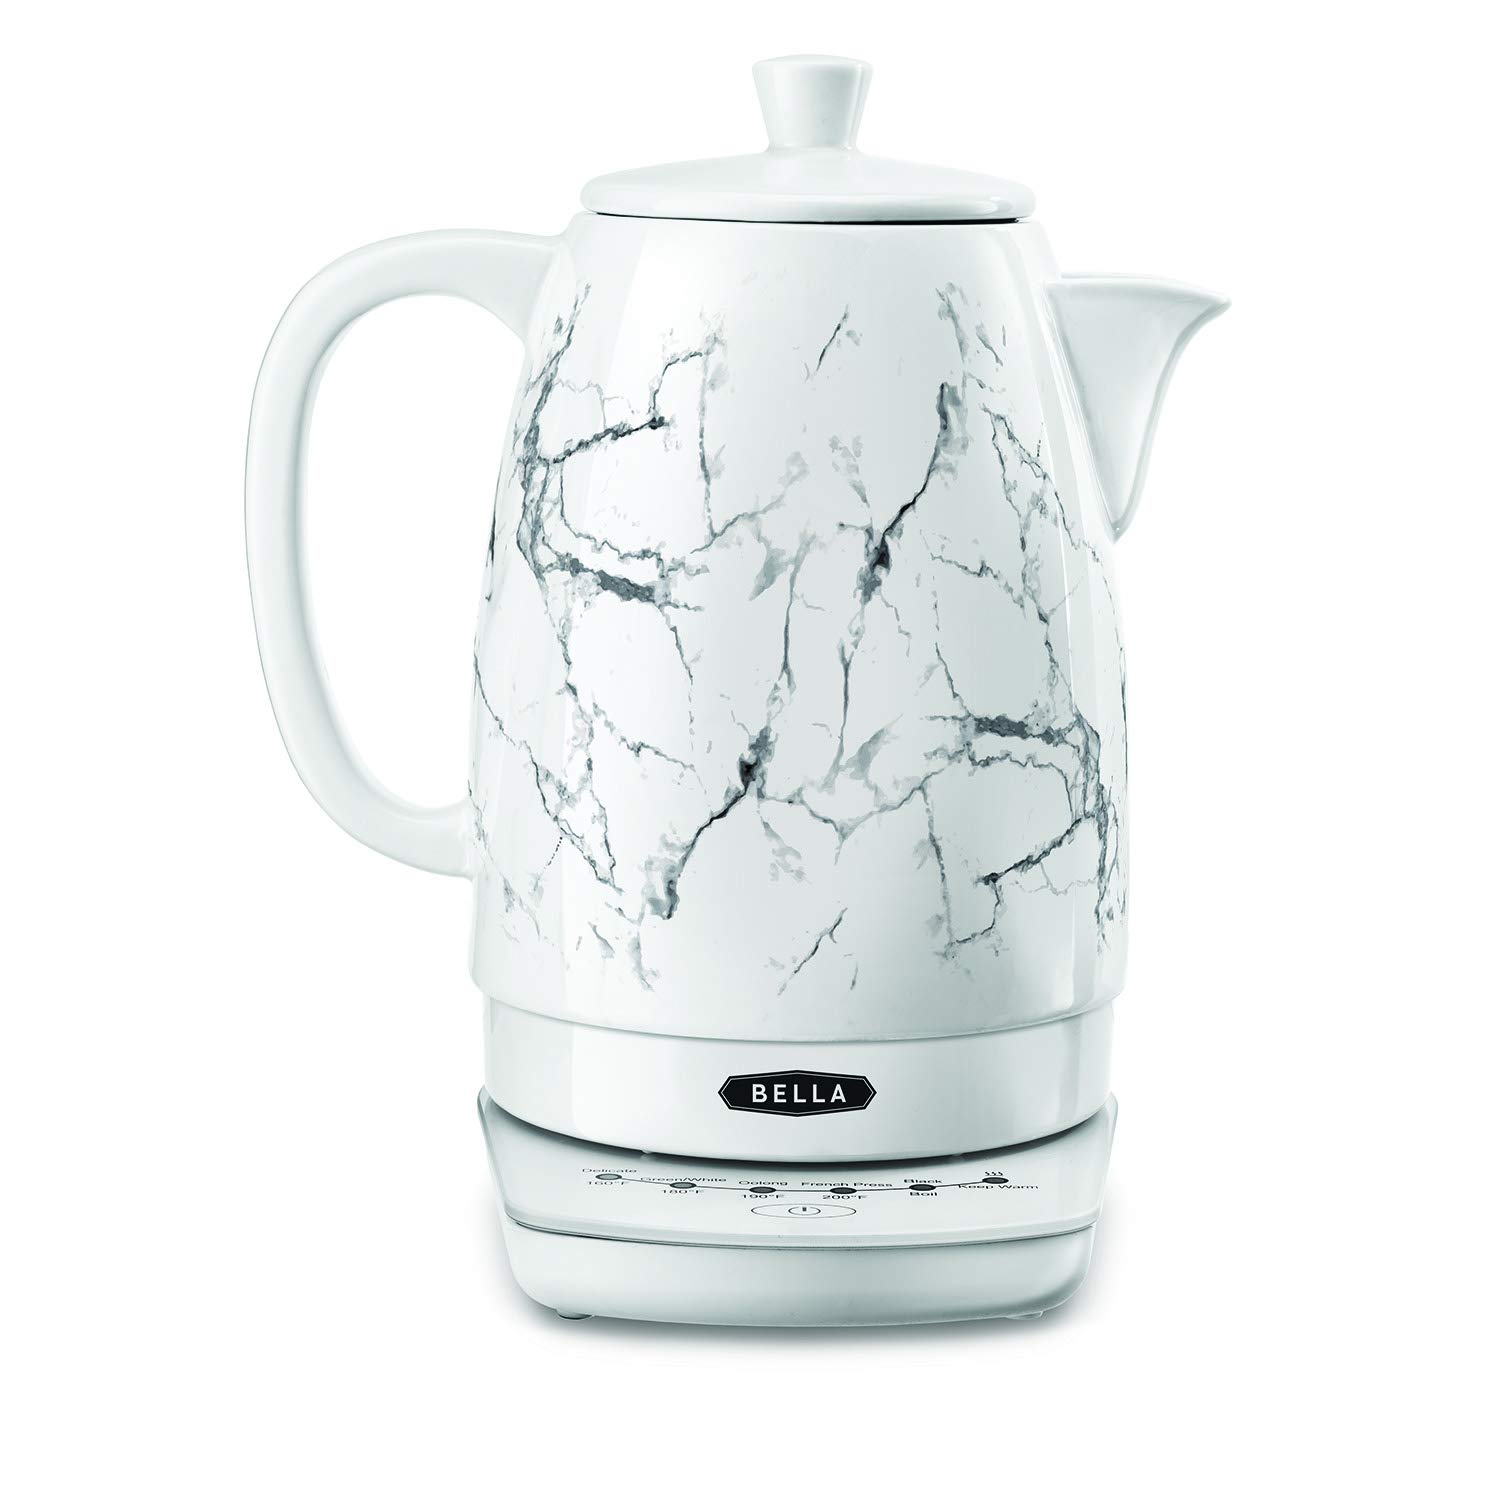 BELLA (14762) 1.8 Liter Temperature Control Electric Ceramic Kettle with Digital Touch Interface, Automatic Shut Off & Detatchable Swivel Base, White Marble